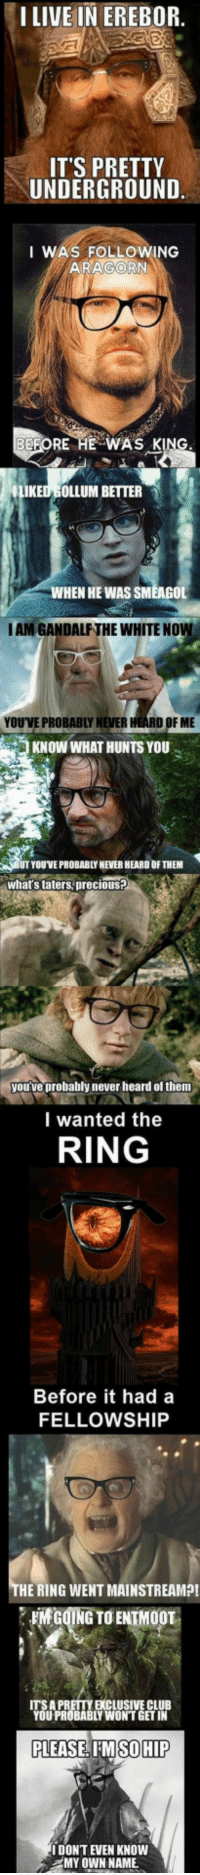 <p>The Lord Of The Rings Is Full Of Hipsters.</p>: I LIVE IN EREBOR  ITS PRETTY  UNDERGROUND  I WAS FOLLOWING  ARAGORN  EFORE HE WA'S KIN  LIKED GOLLUM BETTER  WHEN HE WAS SMEAGOL  IAM GANDALF THE WHITE NOW  YOU'VE PROBABLY NEVER HEARD OF ME  KNOW WHAT HUNTS YOU  YOUVE PROBABLY NEVER HEARD OF THEM  whats taters, precious?  yourve probably never heard of them  I wanted the  RING  Before it hada  FELLOWSHIP  THE RING WENT MAINSTREAMP!  MCOING TO ENTMOOT  A PRETTY EXCLUSIVE CLUB  YOU PROBABLY WON'T GET IN  PLEASE, I'MSOHIP  I DONT EVEN KNOW  MY OWN NAME <p>The Lord Of The Rings Is Full Of Hipsters.</p>